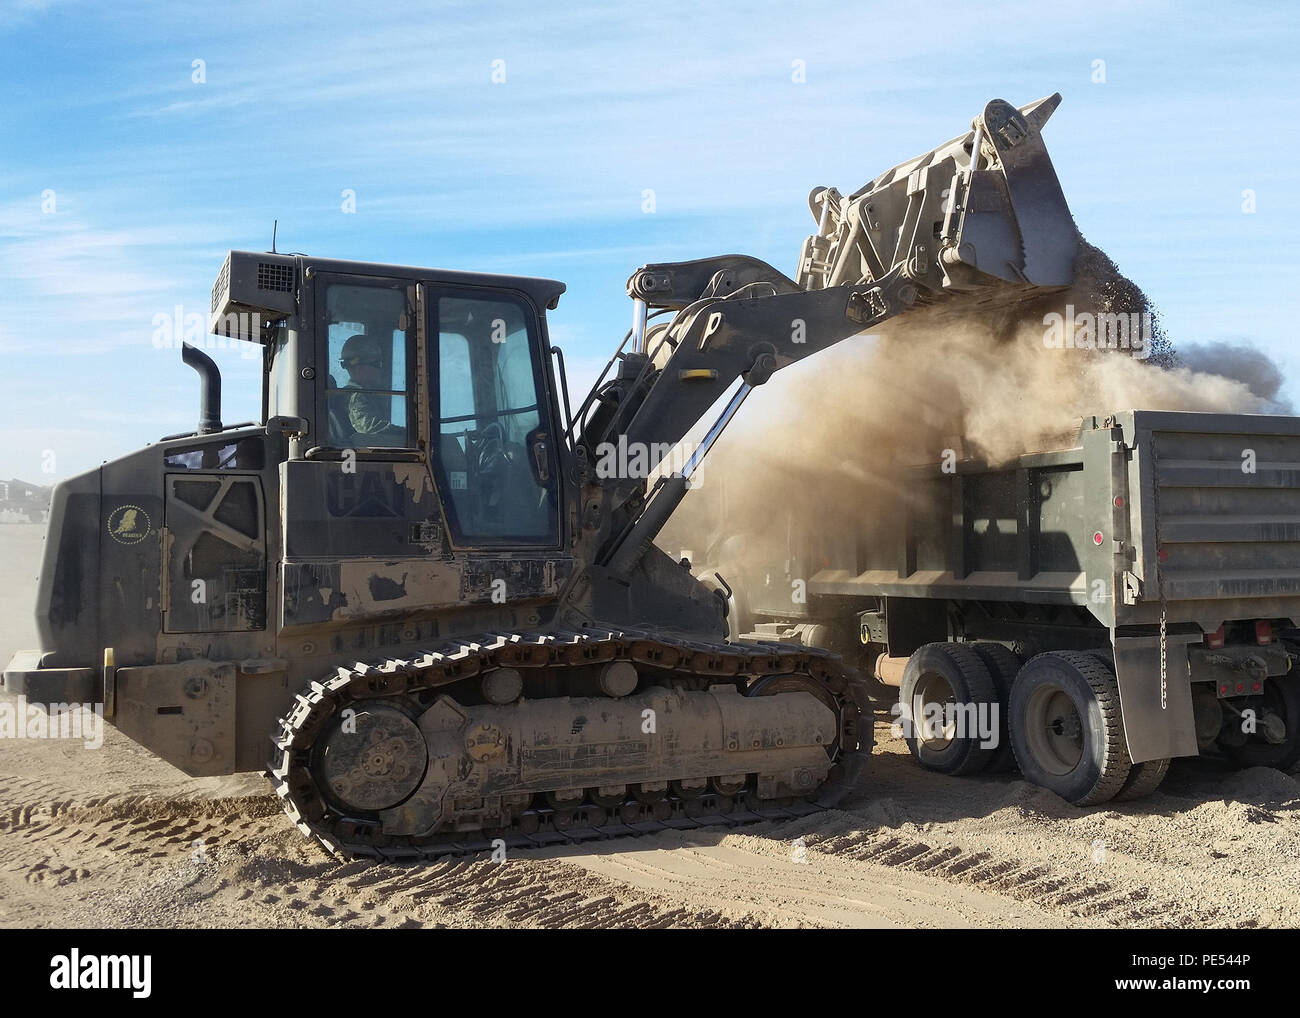 151002-N-QB788-541 SAN CLEMENTE ISLAND, Calif. (Oct. 02, 2015) Equipment Operator Constructionman Austin Keeler, from Florence, Colo., uses a tracked front end loader to dump three-quarter inch aggregate into a dump truck. The material is being transported to a stockpile located at the gate leading into the Shore Bombardment Area (SHOBA) which the road crew repair team will use for future road maintenance operations. (U.S. Navy photo by Equipment Operator 3rd Class Austin Wickham/Released) - Stock Image